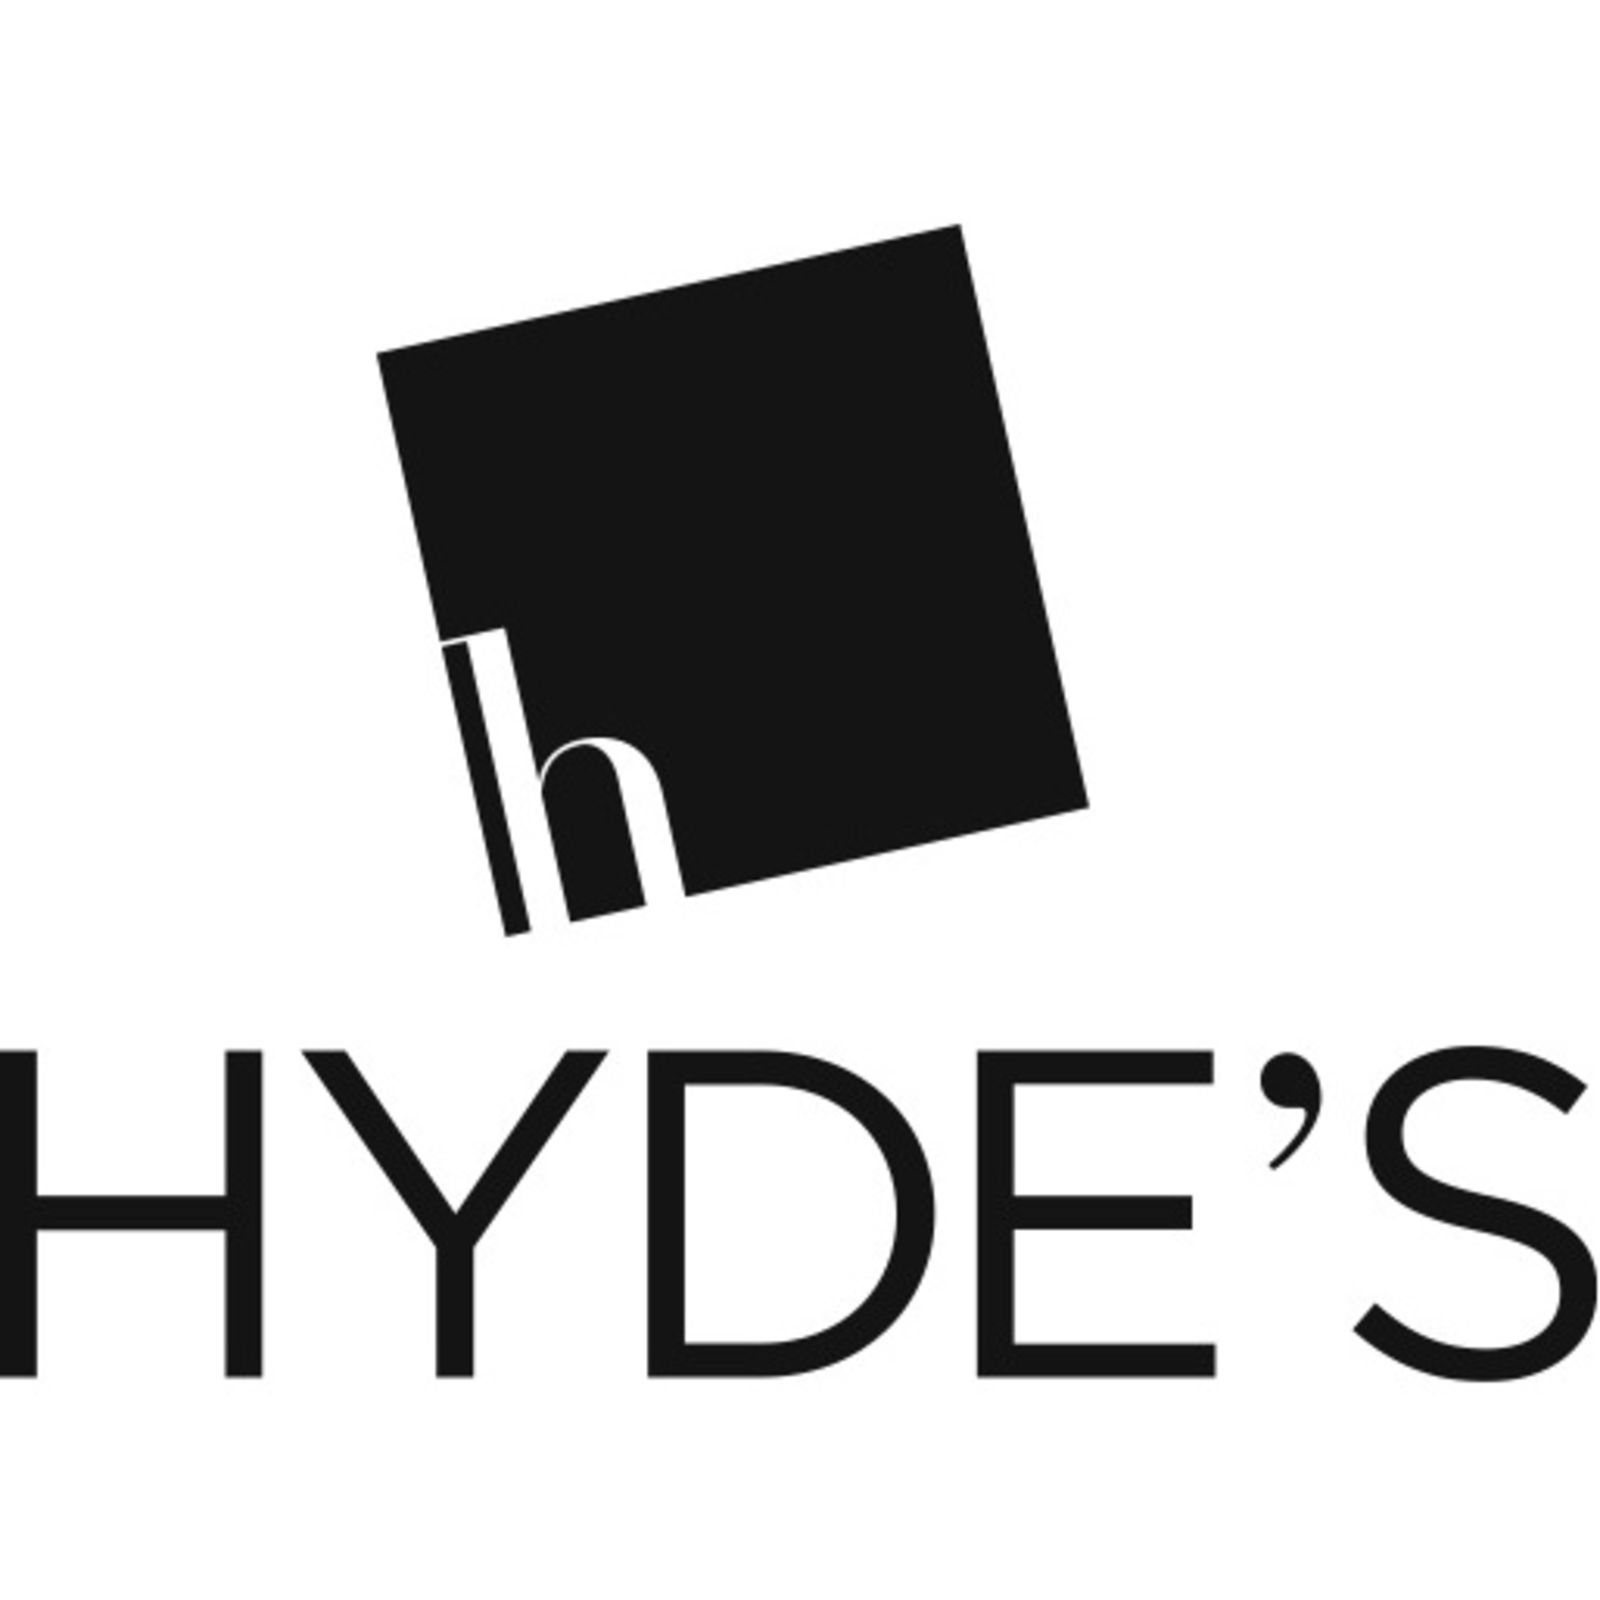 HYDE'S SPECTACLES